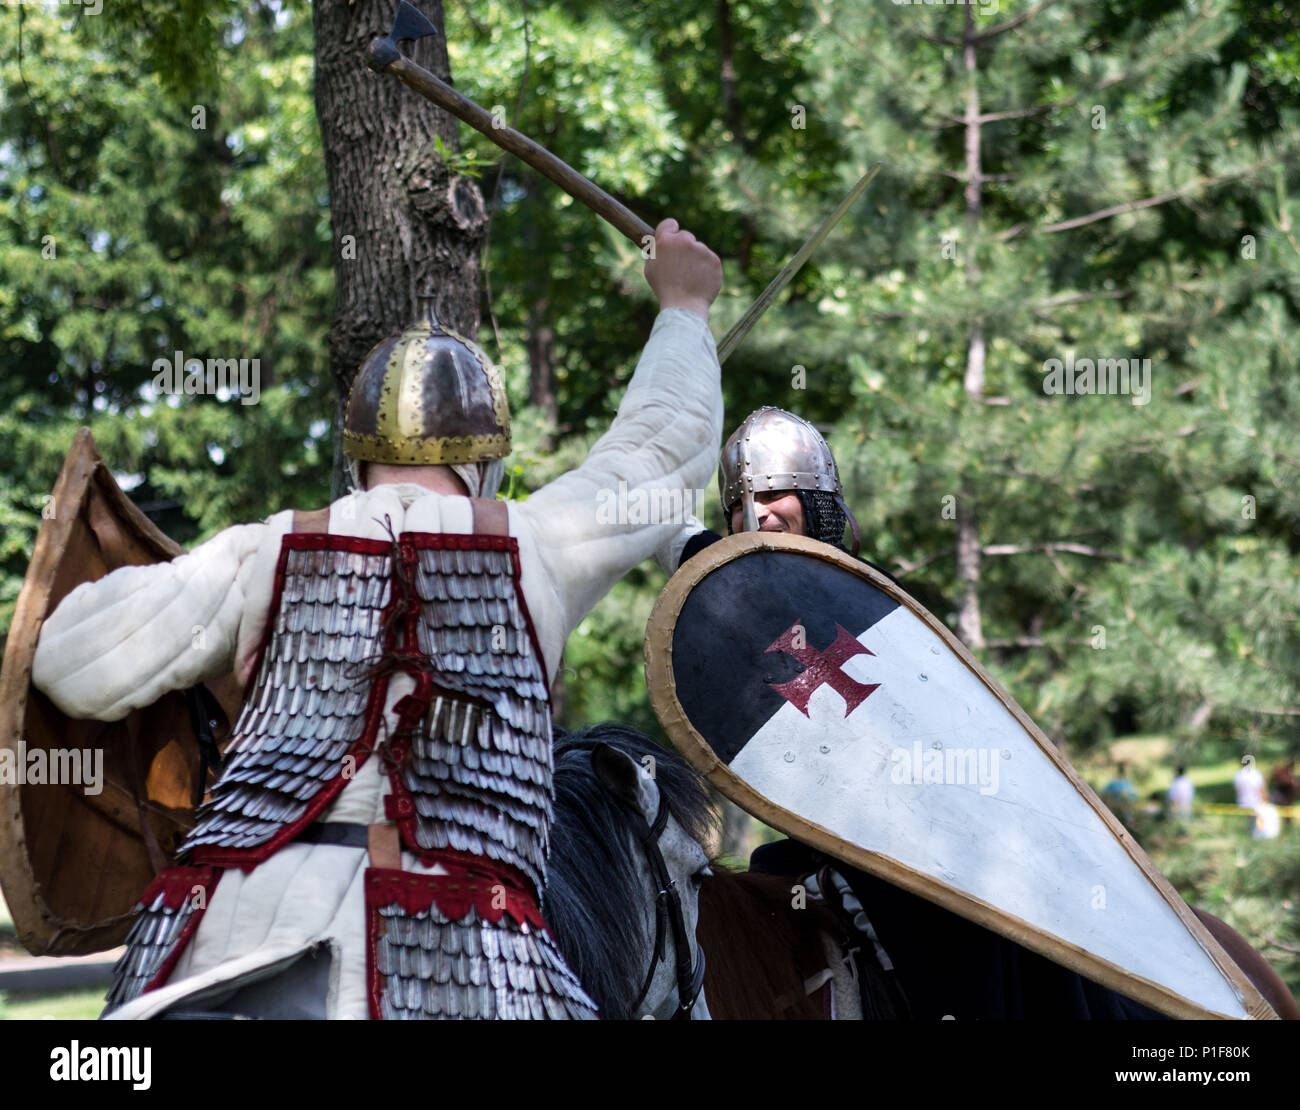 Nis, Serbia - June 10, 2018: Battle of knight on horses with swords in forest. Middle ages fighting concept Stock Photo